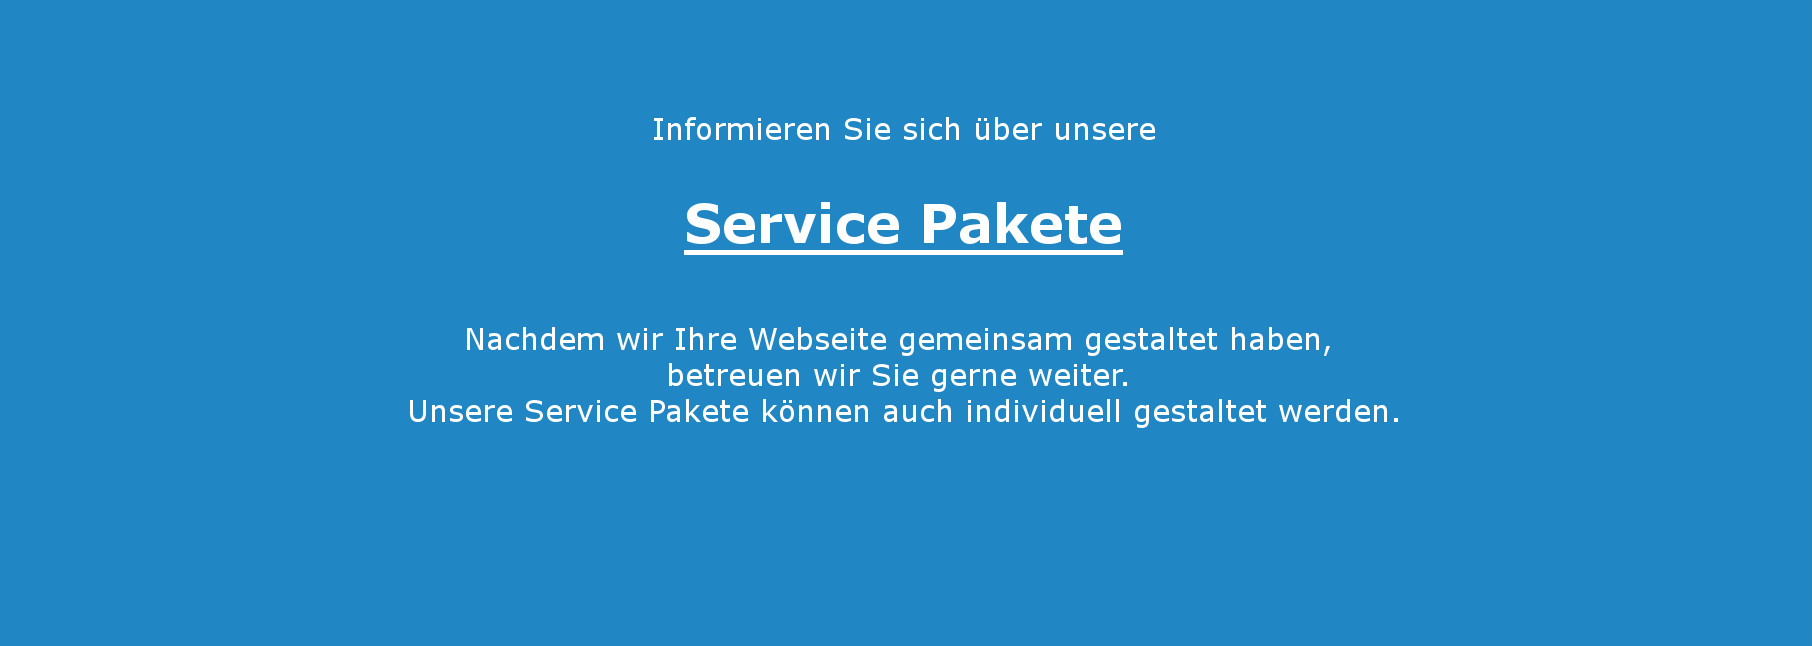 Cnsolutions All-in-One web Services - Christian Nejedly - Service Pakete Christian Nejedly